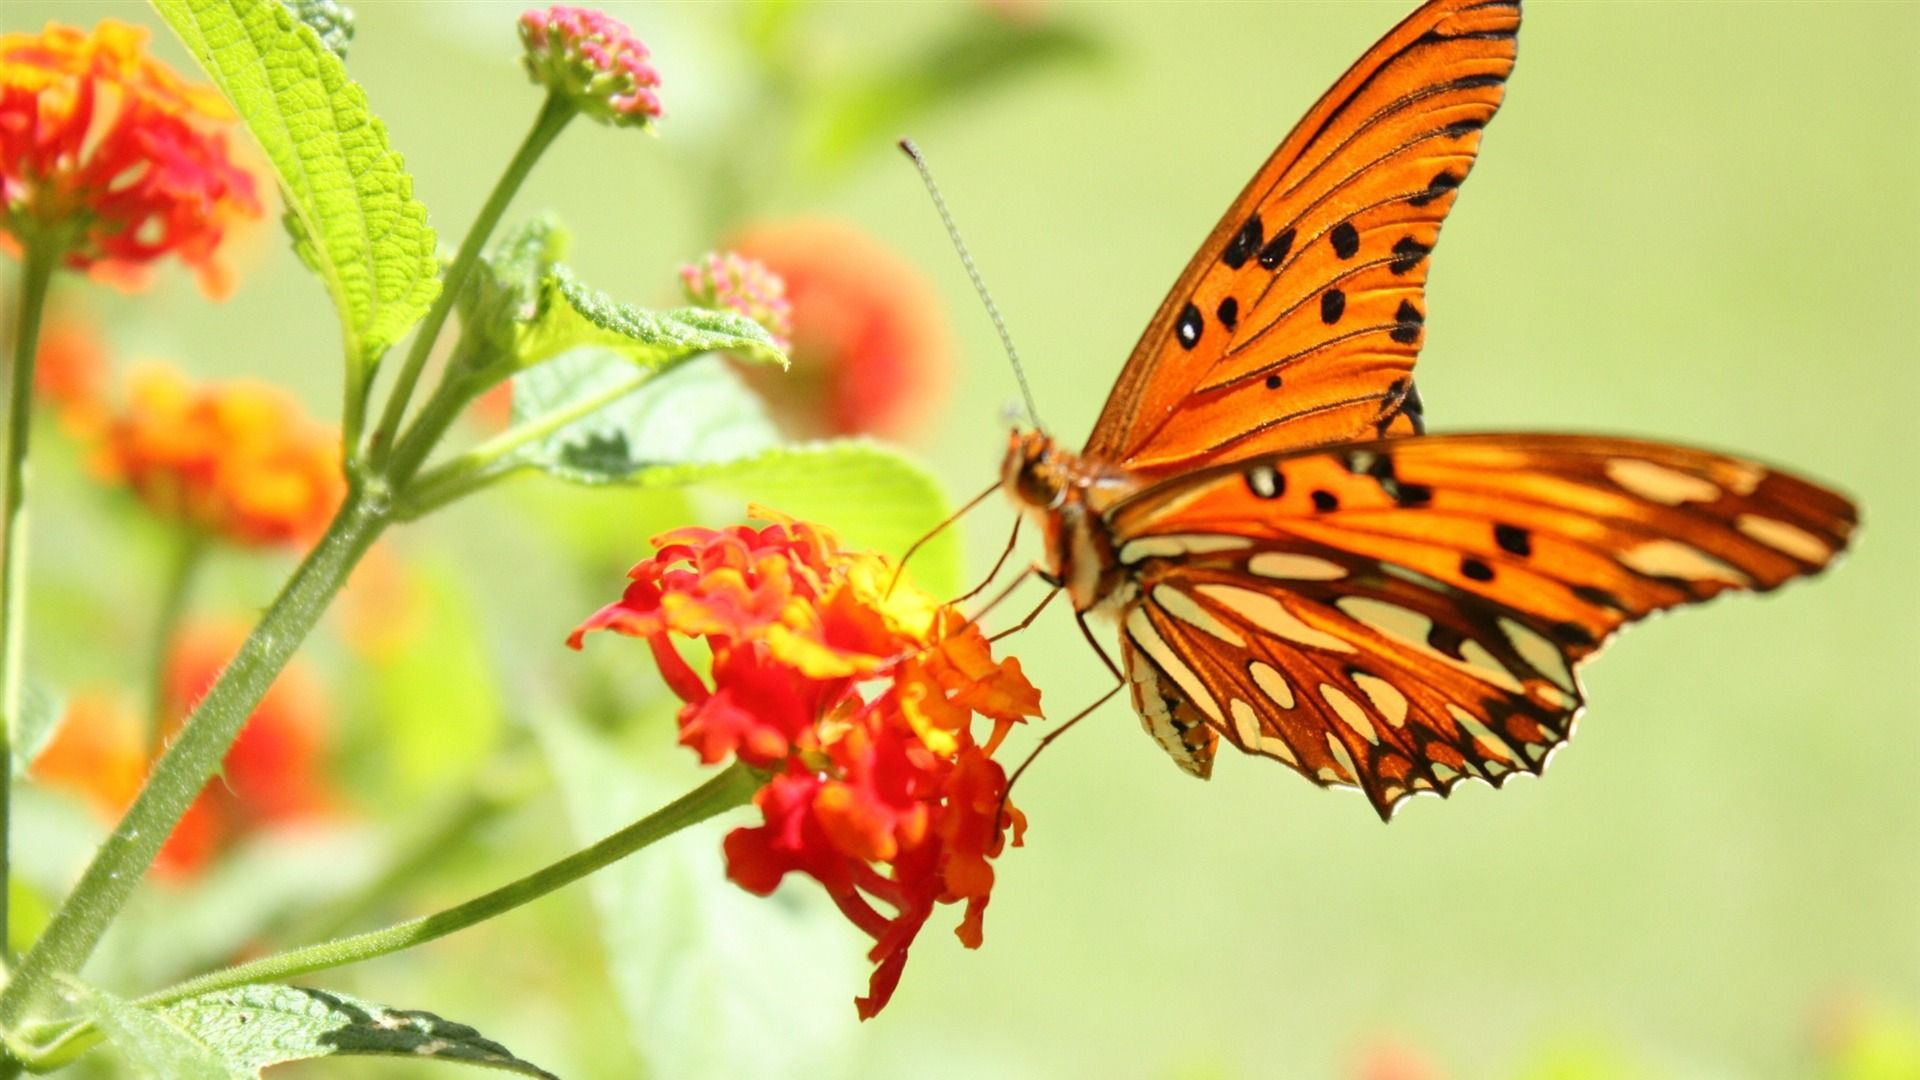 wallpaper.wiki-Butterfly-and-flowers-1080p-hd-photos-nature-PIC ...